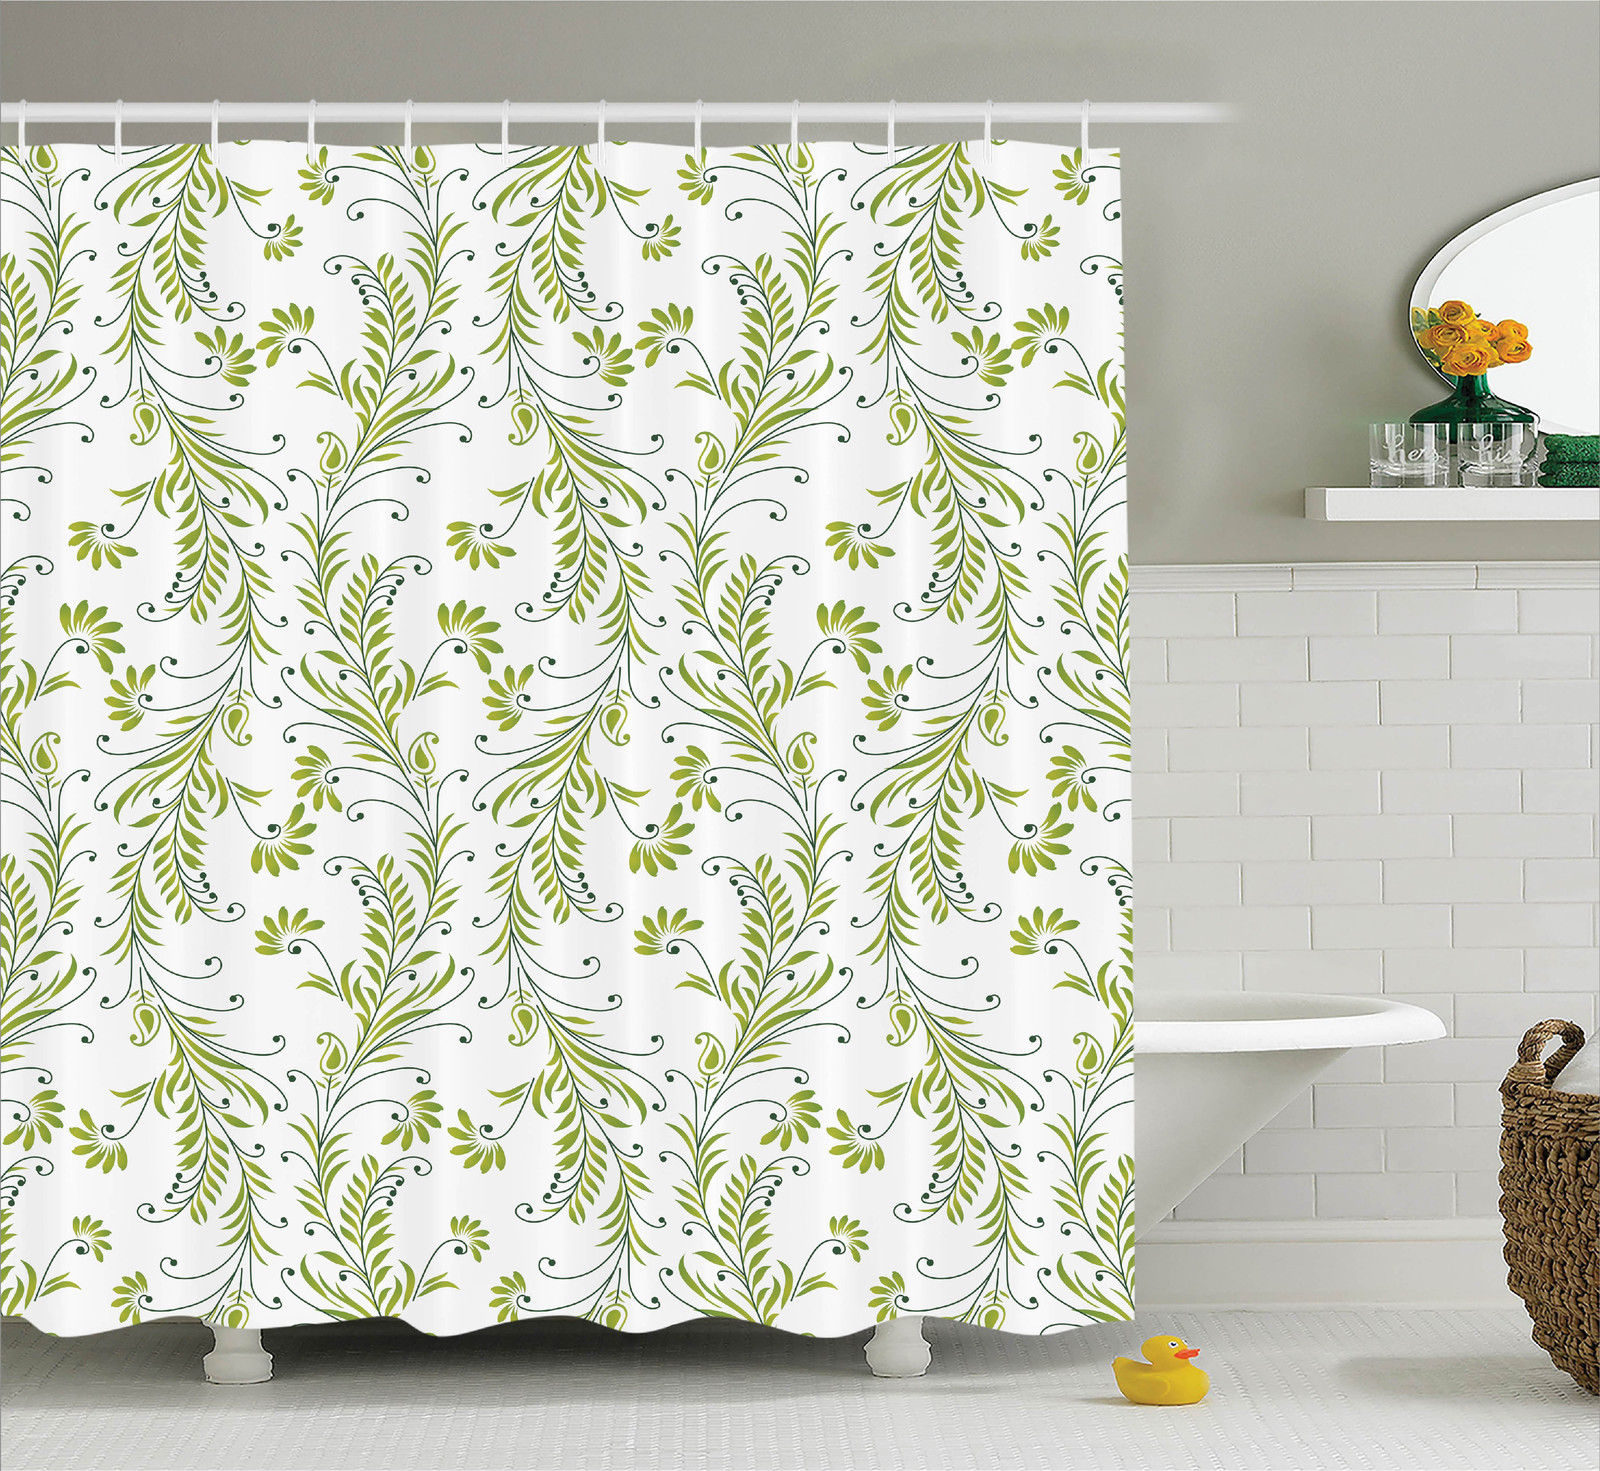 House Decor Shower Curtain Set Paisley Leaf Antique Stem Swirl Traditional Damask Luxury Fashion Stylize Flora Bathroom Accessories 69w X 70l